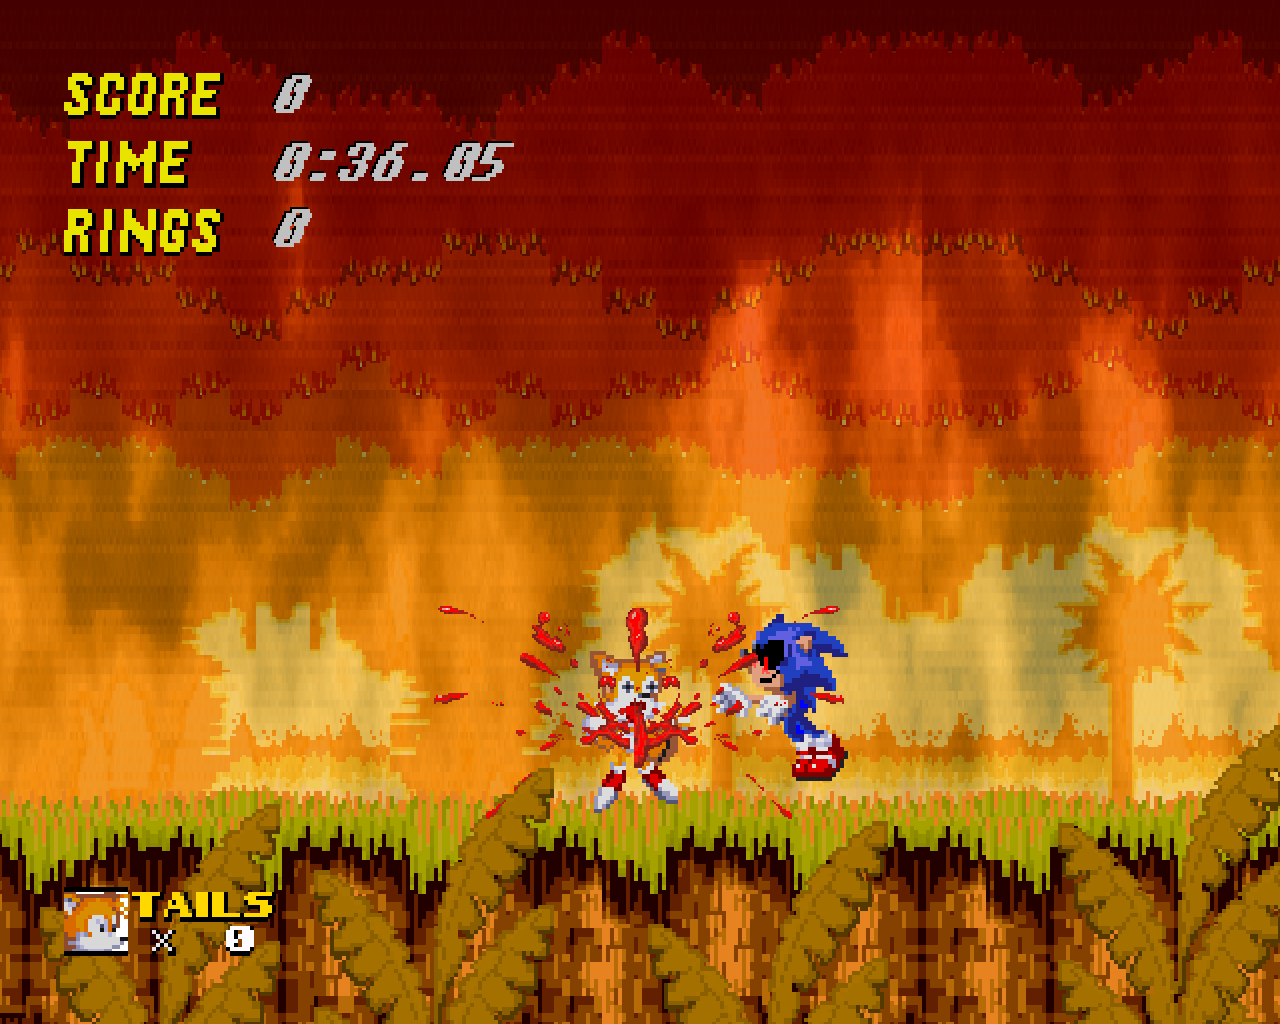 Sonic exe game scary demo unblocked games picture czzcgs com